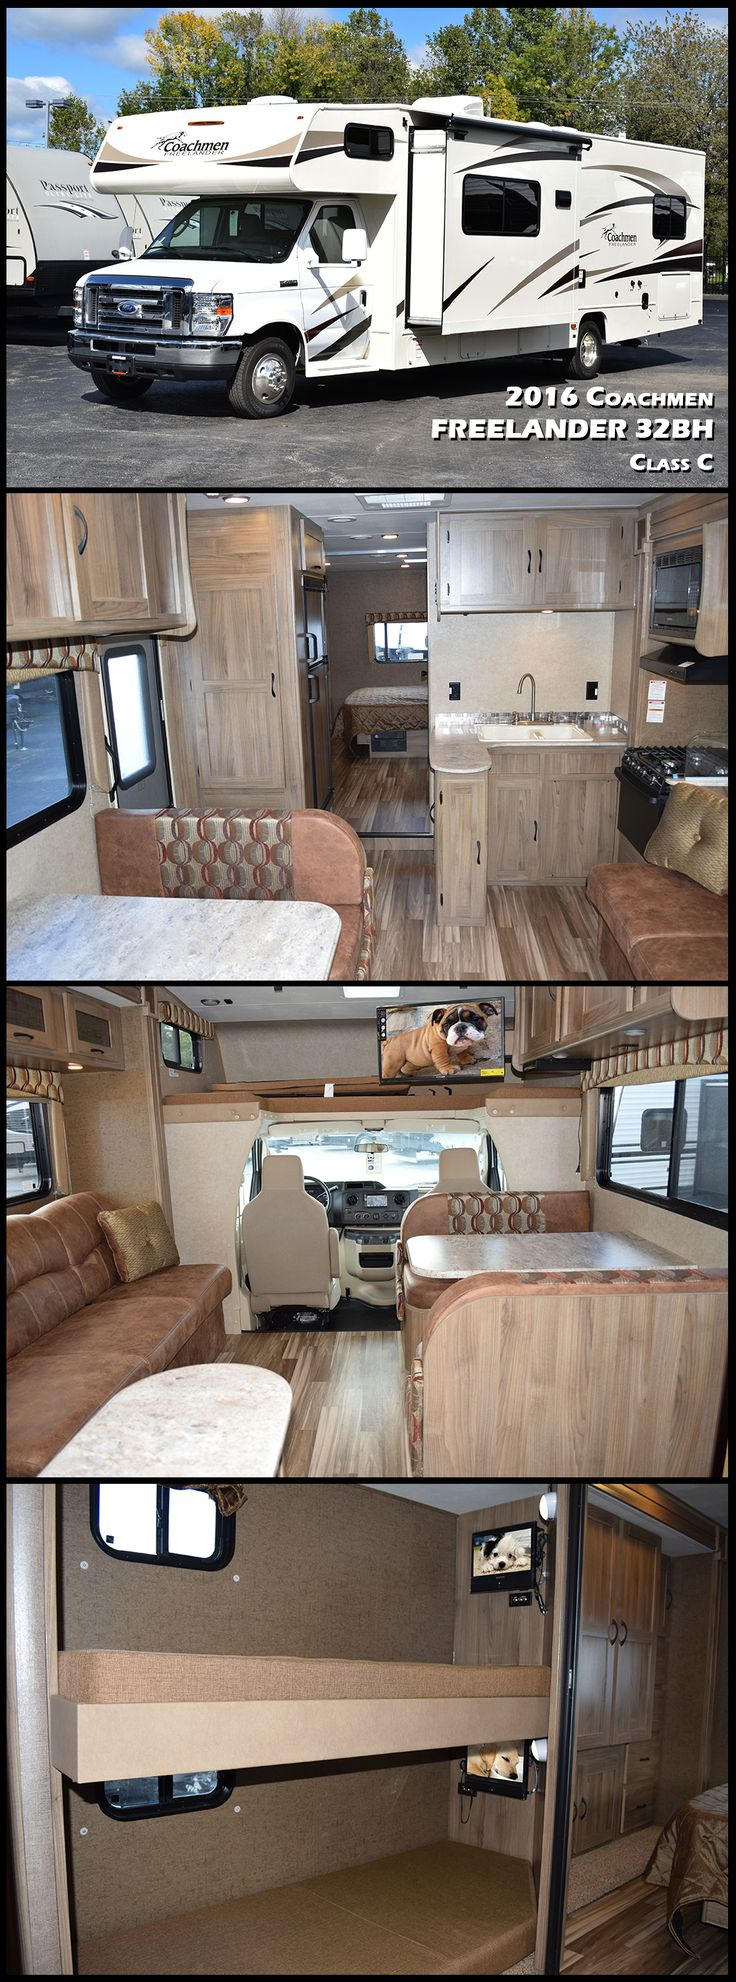 This 2016 COACHMEN FREELANDER 32BH is a great bunkhouse